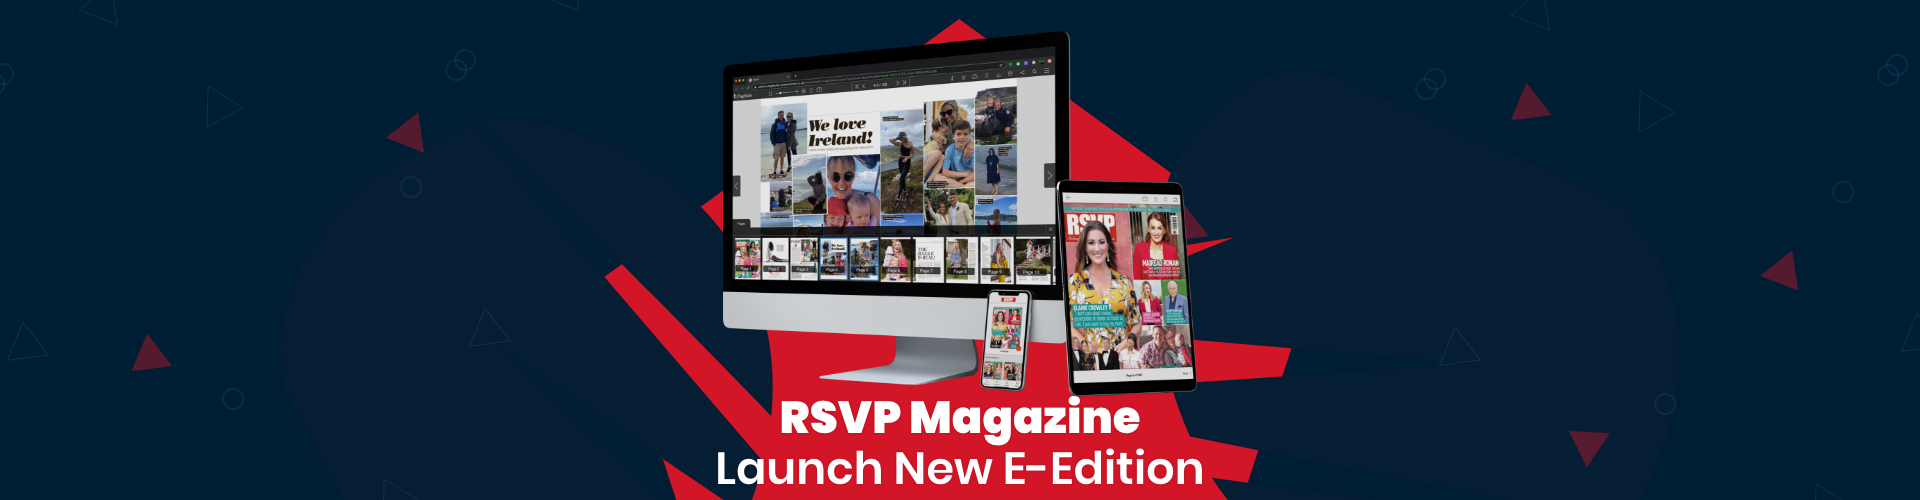 Header image of PageSuite Launch New E-Edition for RSVP Magazine